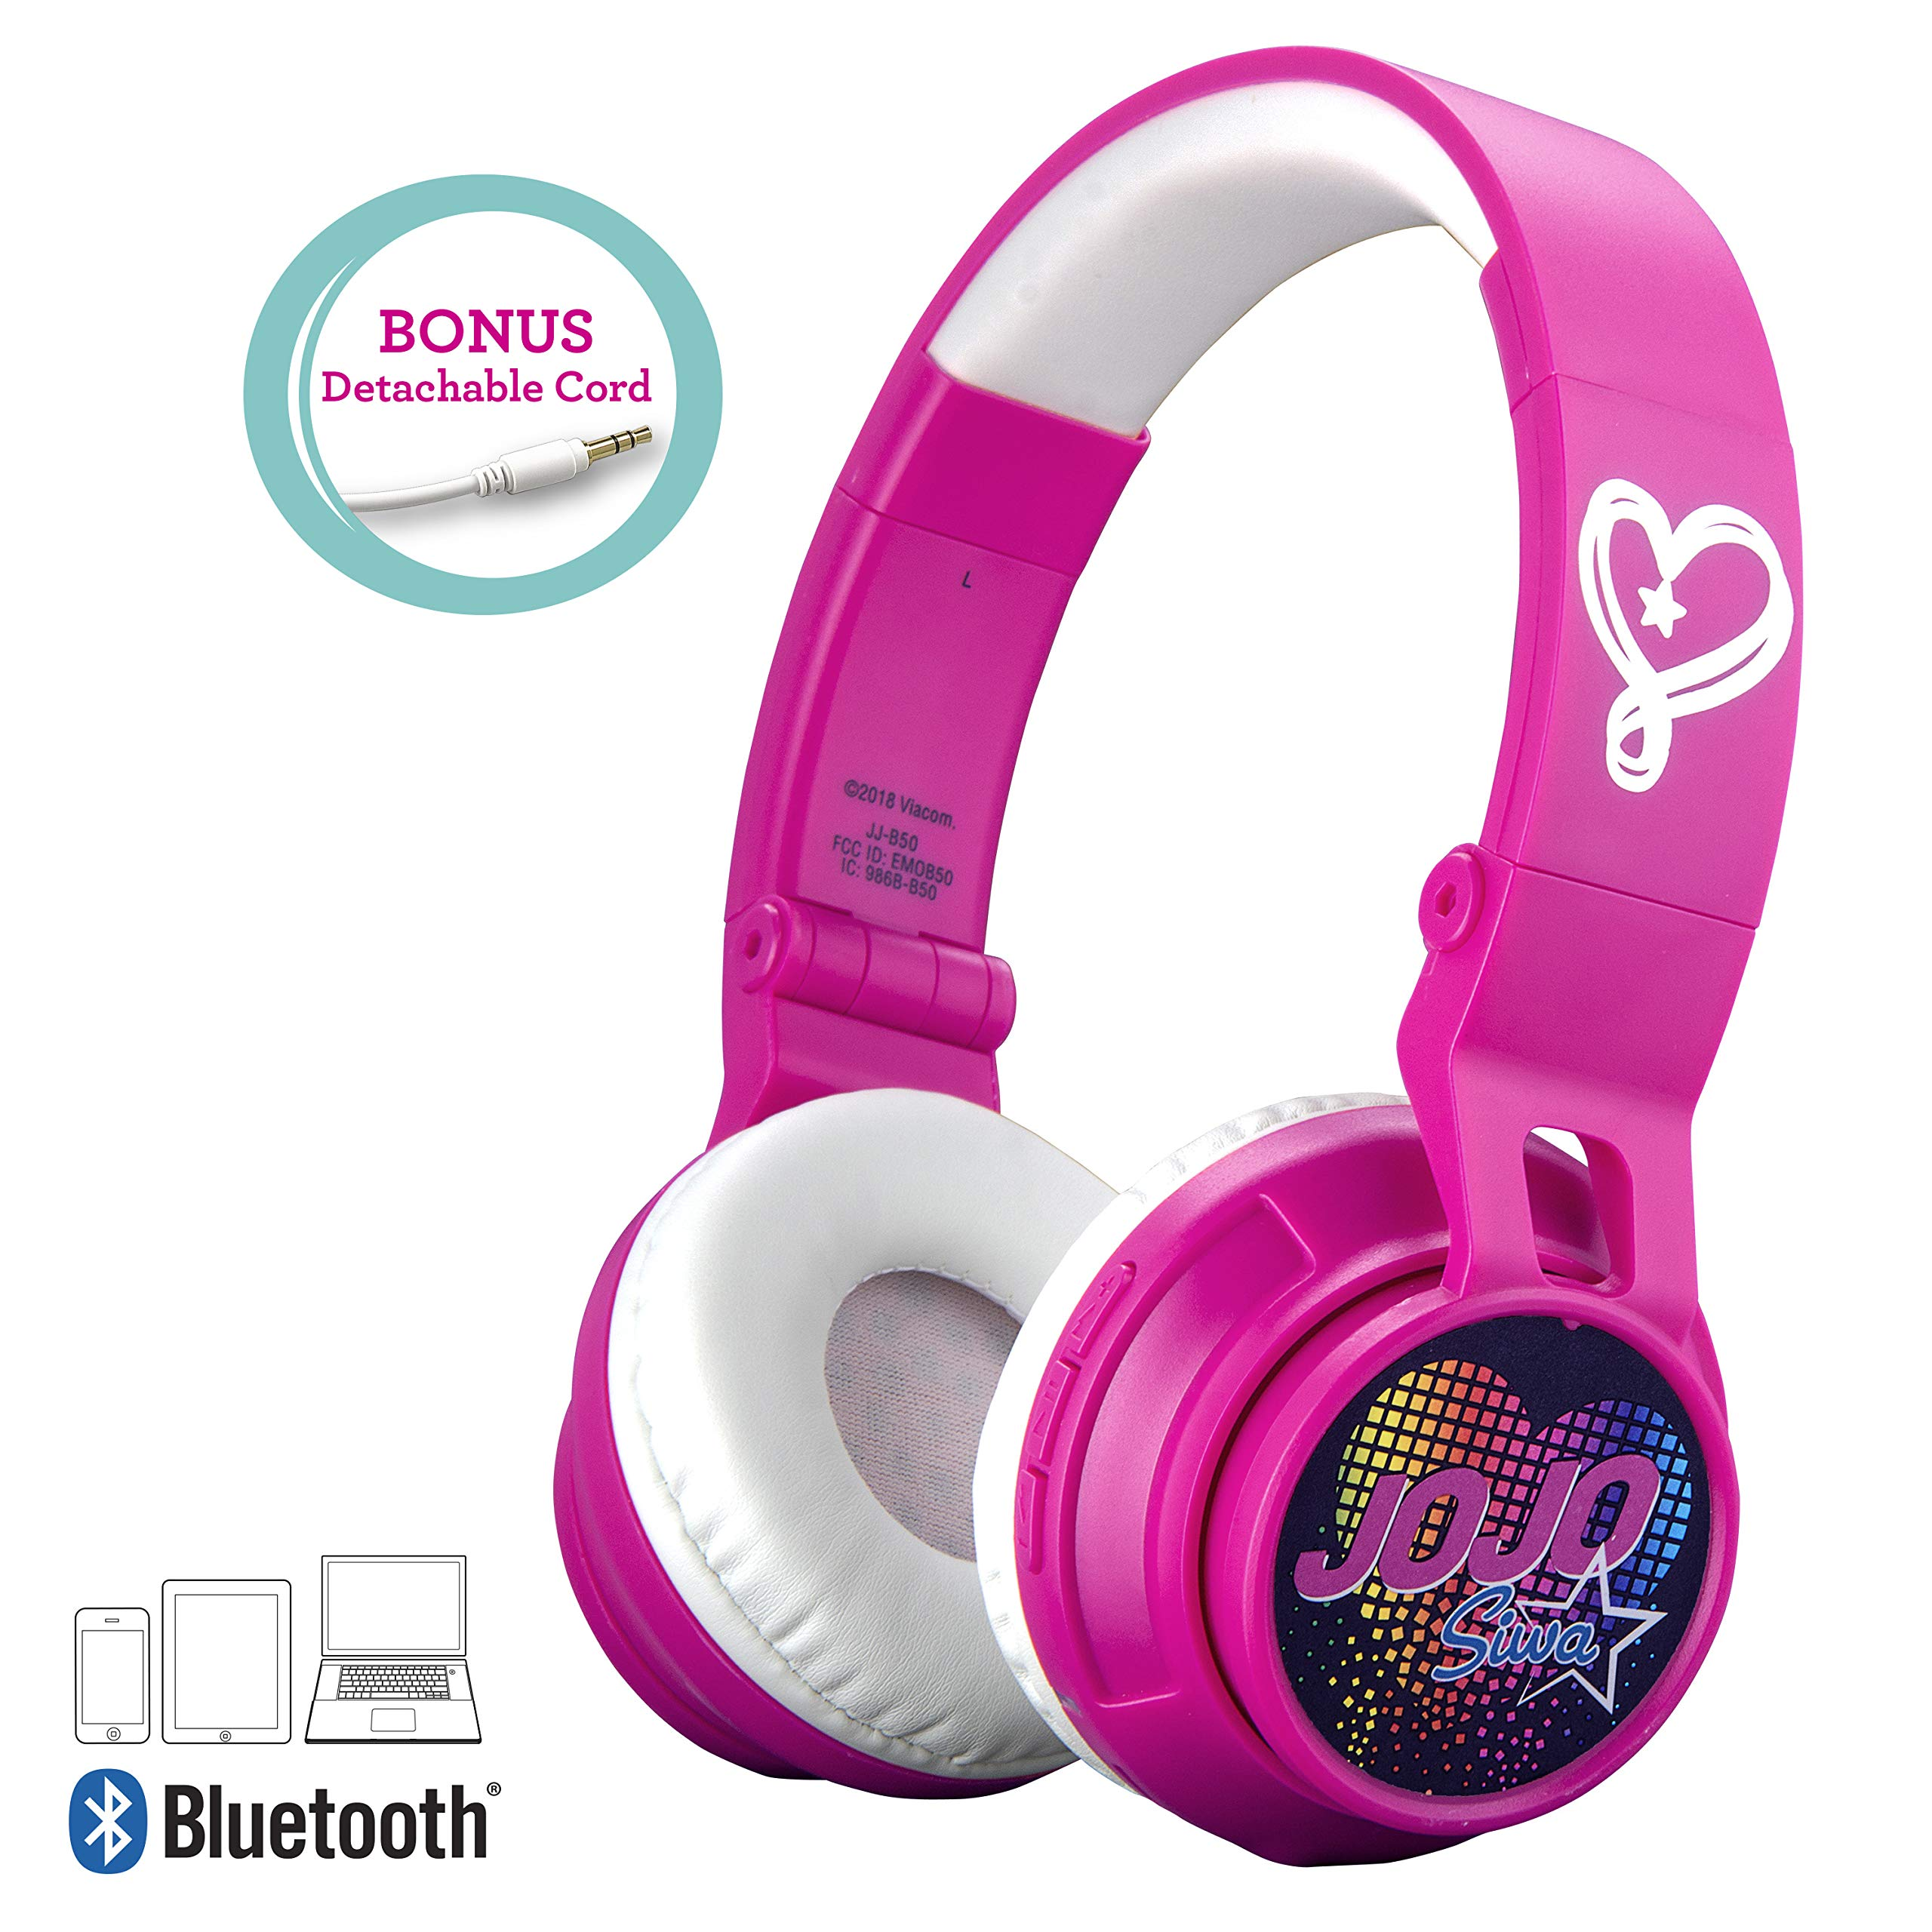 JOJO SIWA KID SAFE WIRED HEADPHONES GIFT 4 BIRTHDAY OR CHRISTMAS w